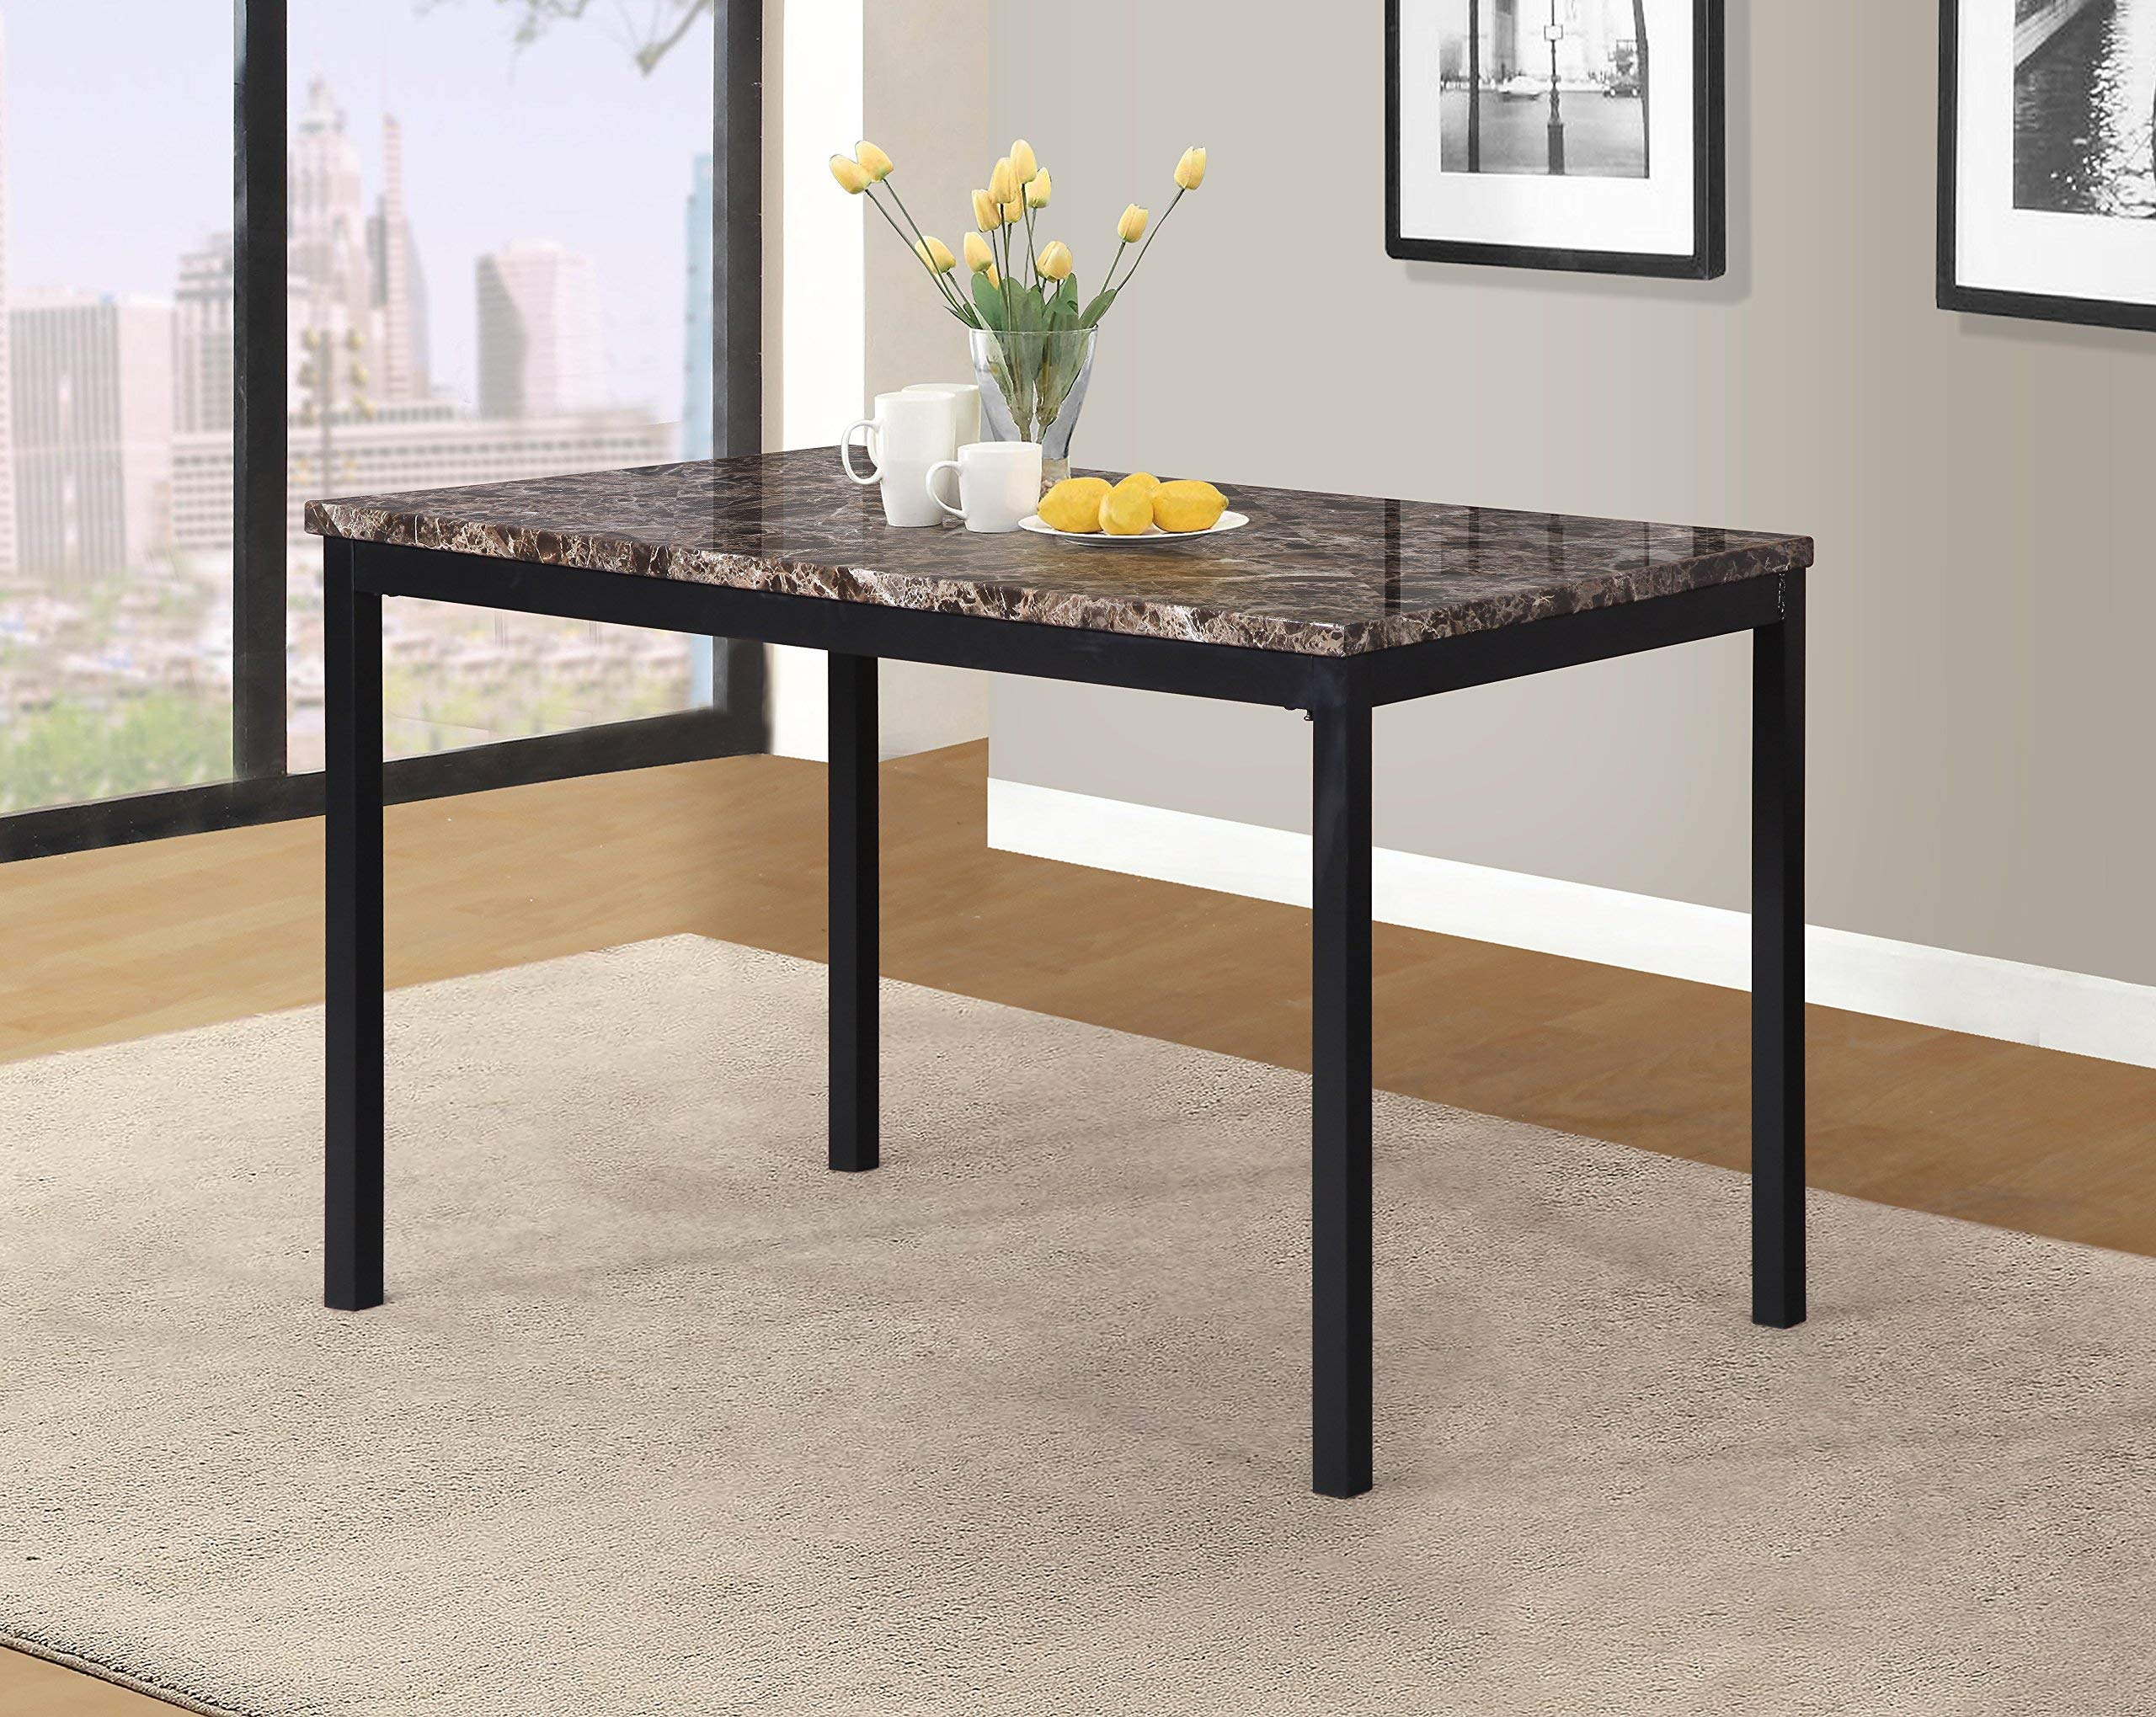 Roundhill Furniture T007 Noyes Metal Dining Table with Laminated Faux Marble Top by Roundhill Furniture